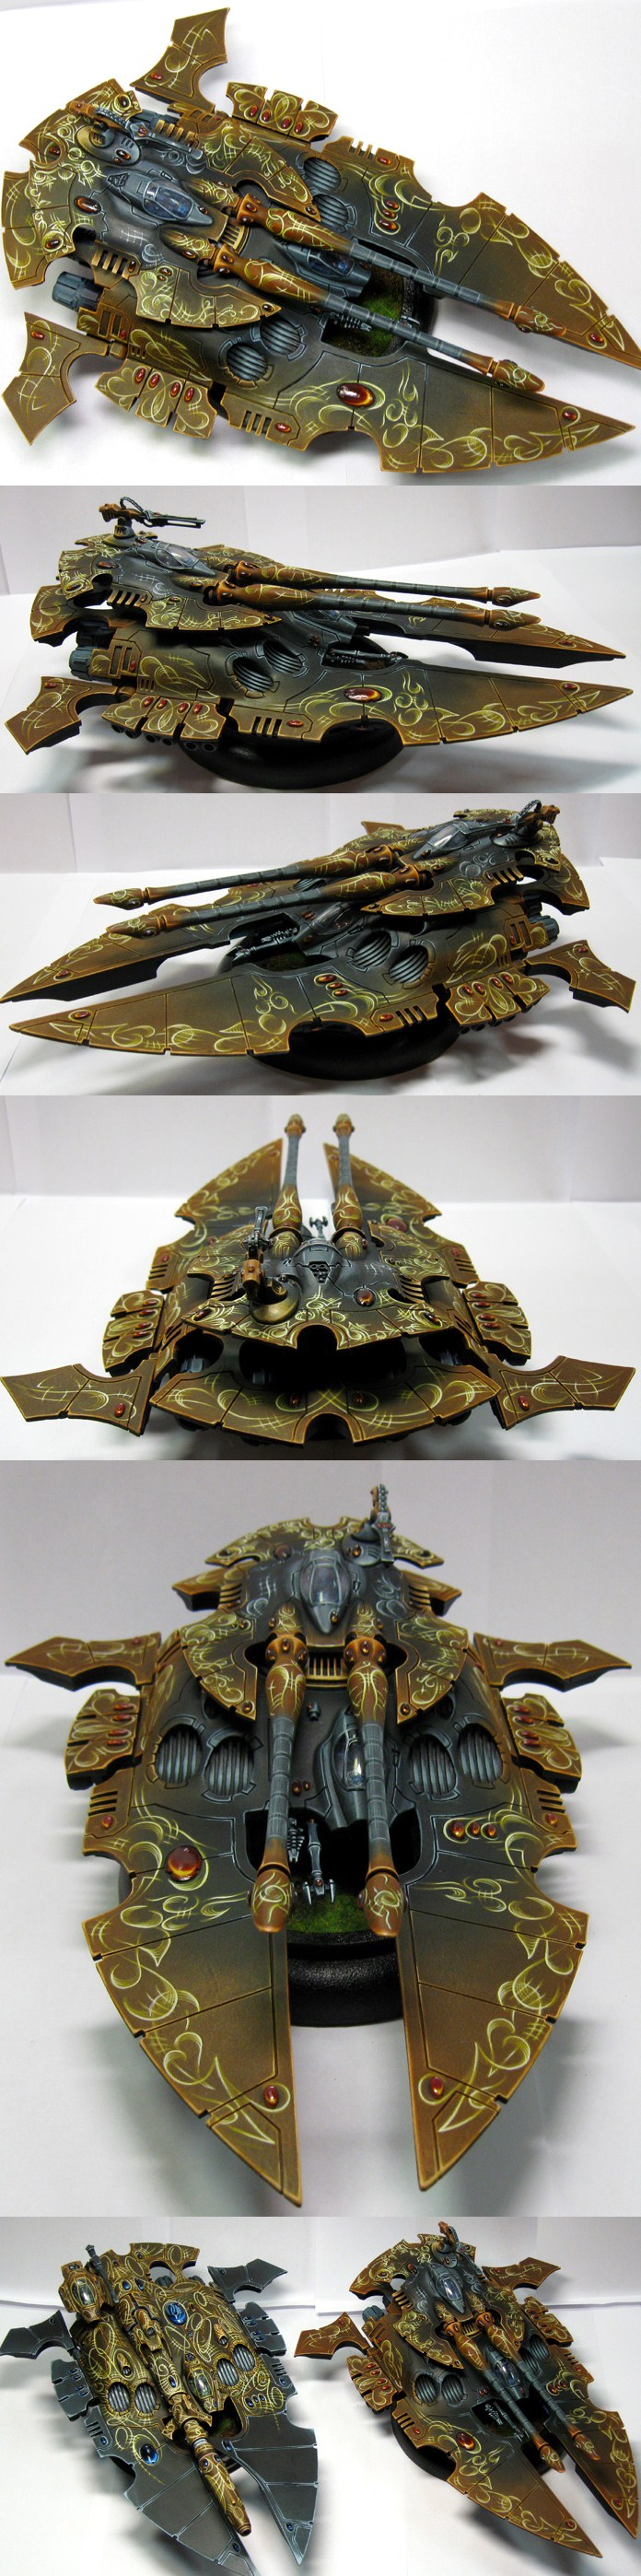 ELDAR SCORPION TYPE II SUPER HEAVY GRAV TANK